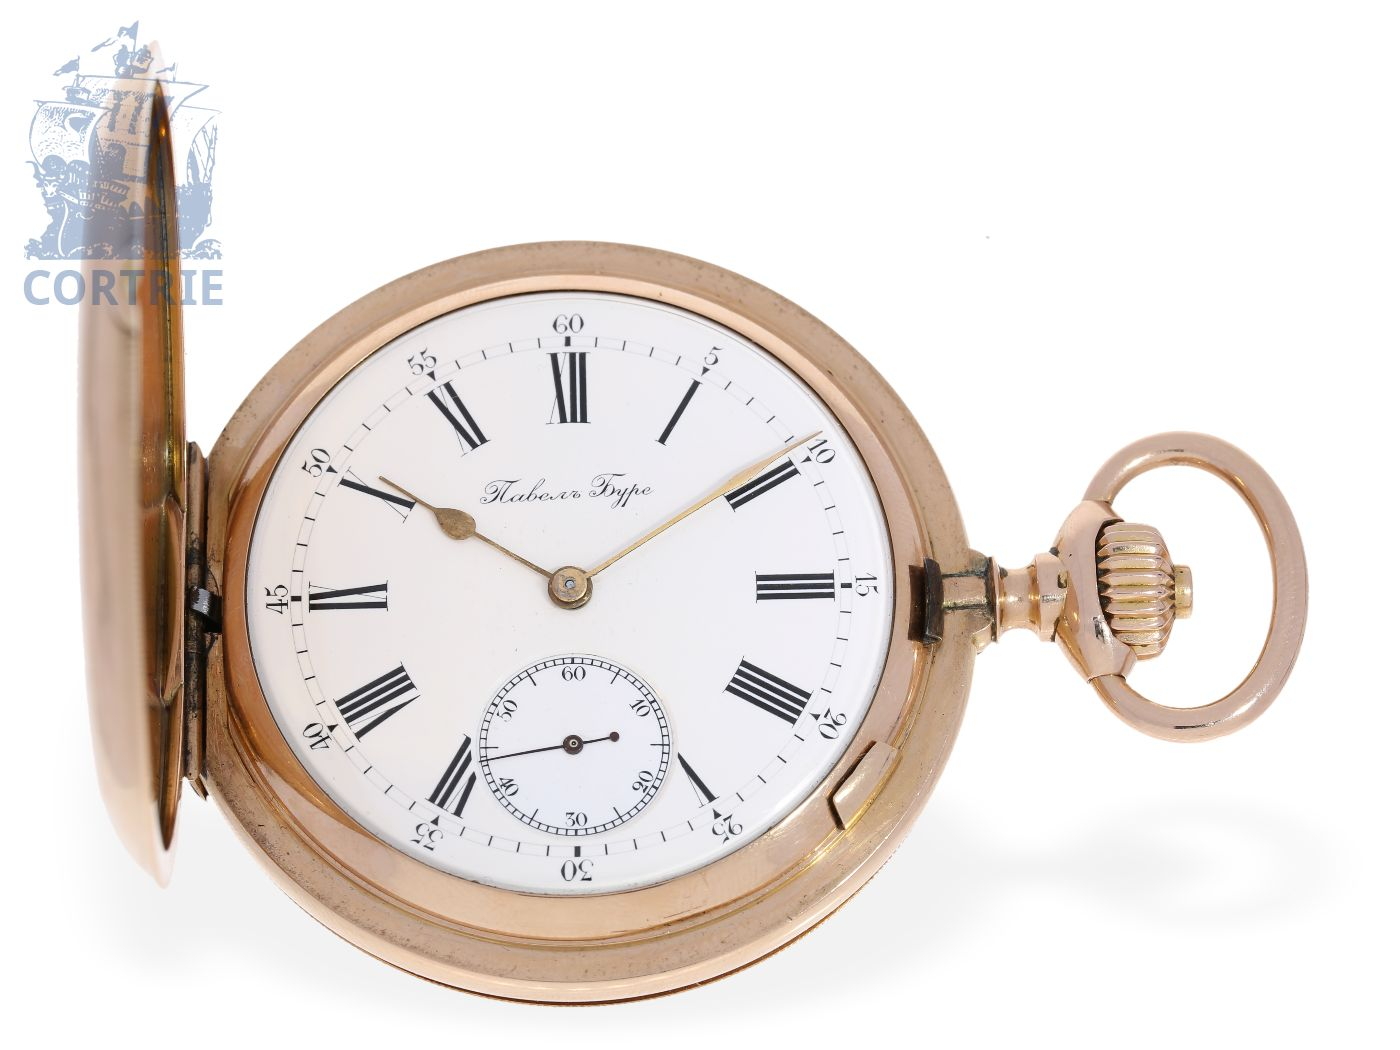 Pocket watch: heavy pink gold Ankerchronometer, fine quality, Pavel Buhre, the Czar's watchmaker of the Court, ca. 1900-